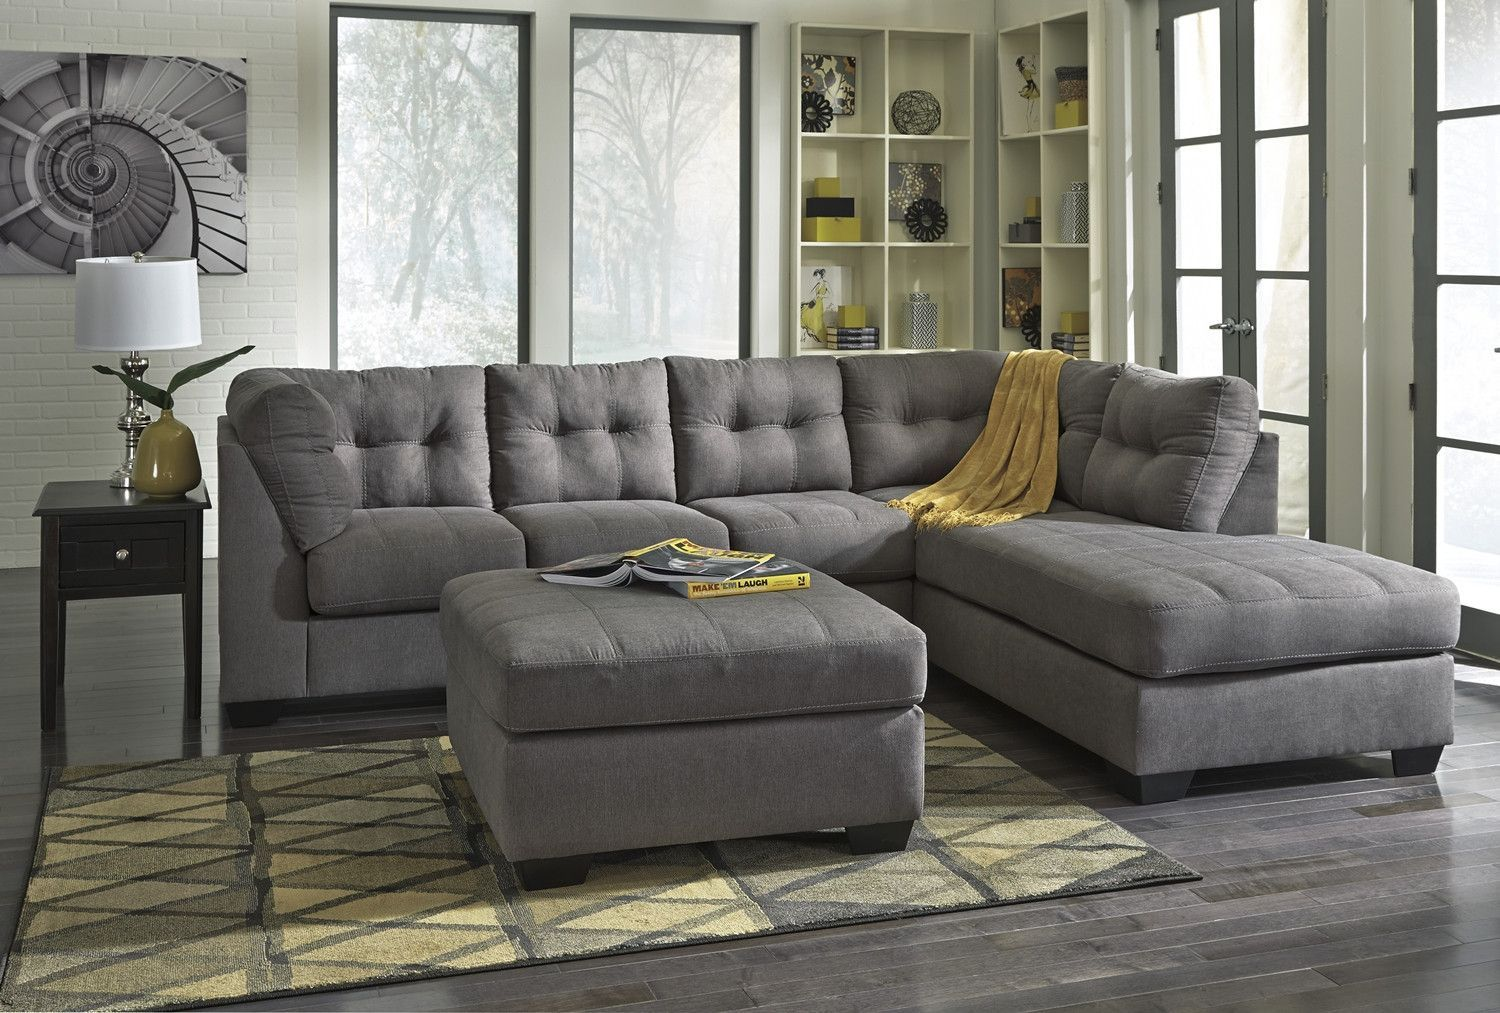 Ashley Furniture Sectional Frame Constructions Have Been Rigorously Tested To Simula Ashley Furniture Sectional Ashley Furniture Sofas Fabric Sectional Sofas